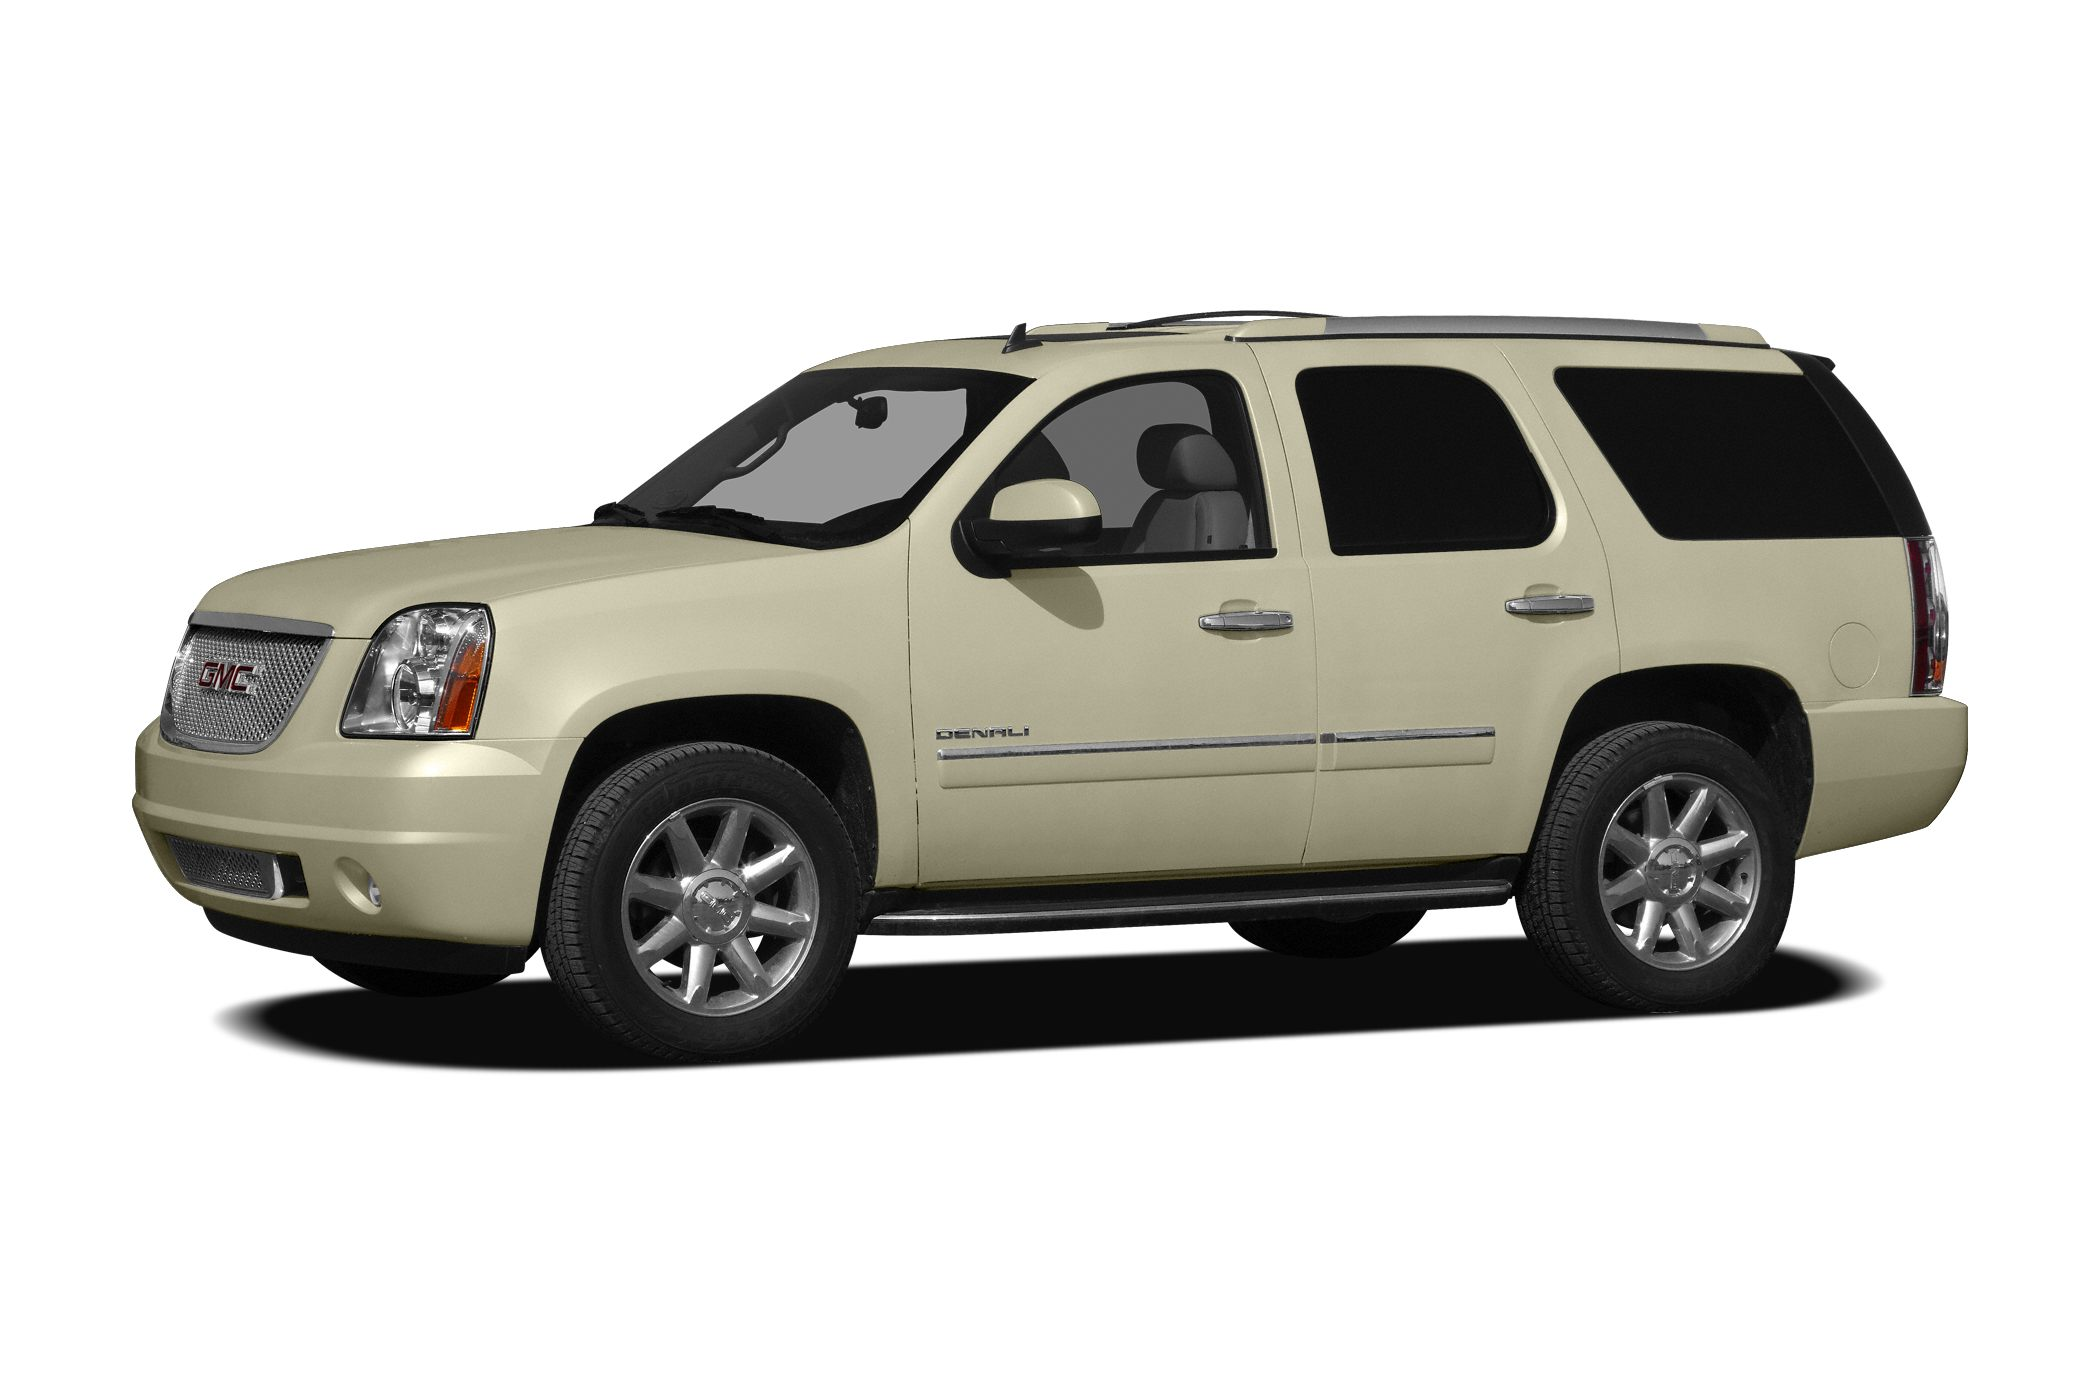 2012 GMC Yukon Denali SUV for sale in Shreveport for $41,210 with 43,744 miles.